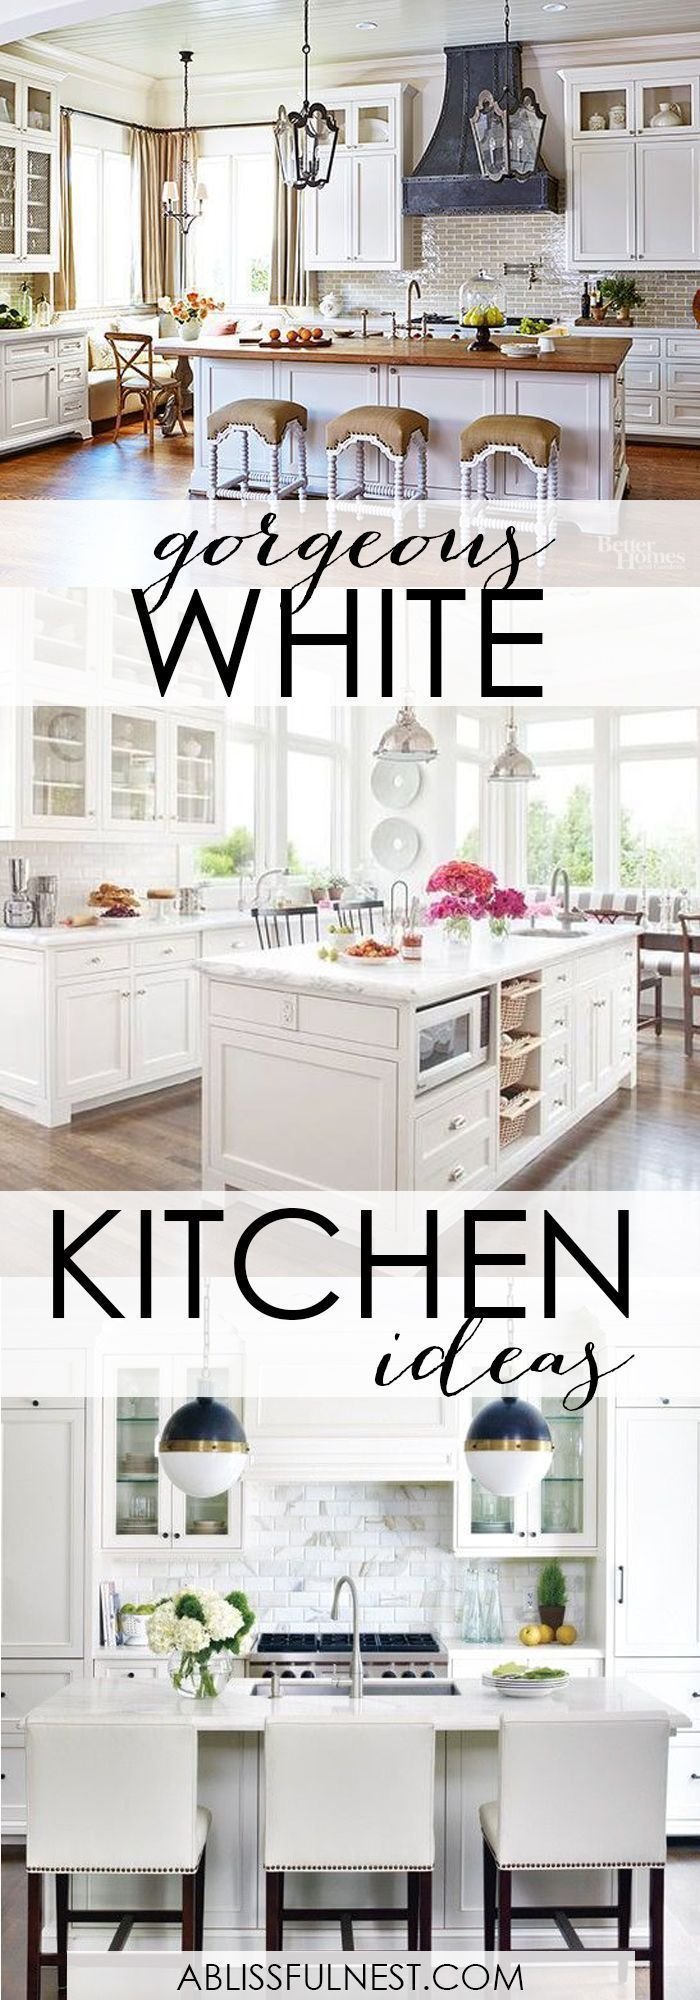 These Gorgeous White Kitchen Ideas Range From Modern To Farmhouse And All  In Between. Get Great Ideas On White Kitchens With All These Home Décor  Tips And ...